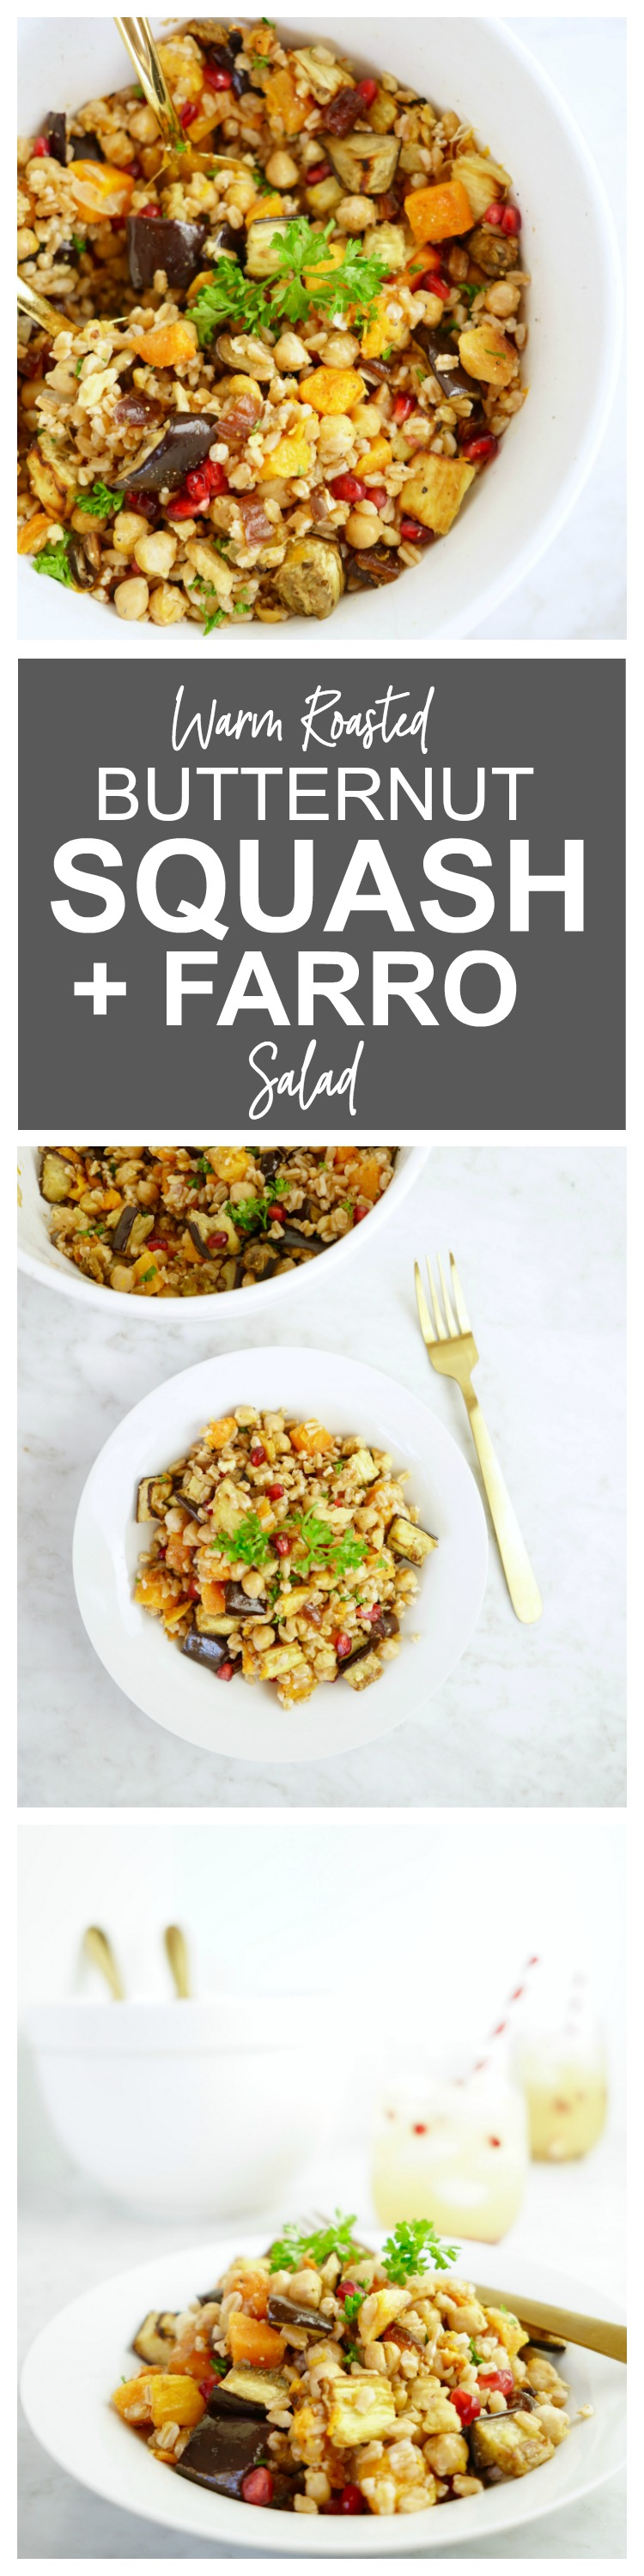 Warm Roasted Butternut Squash + Farro Salad